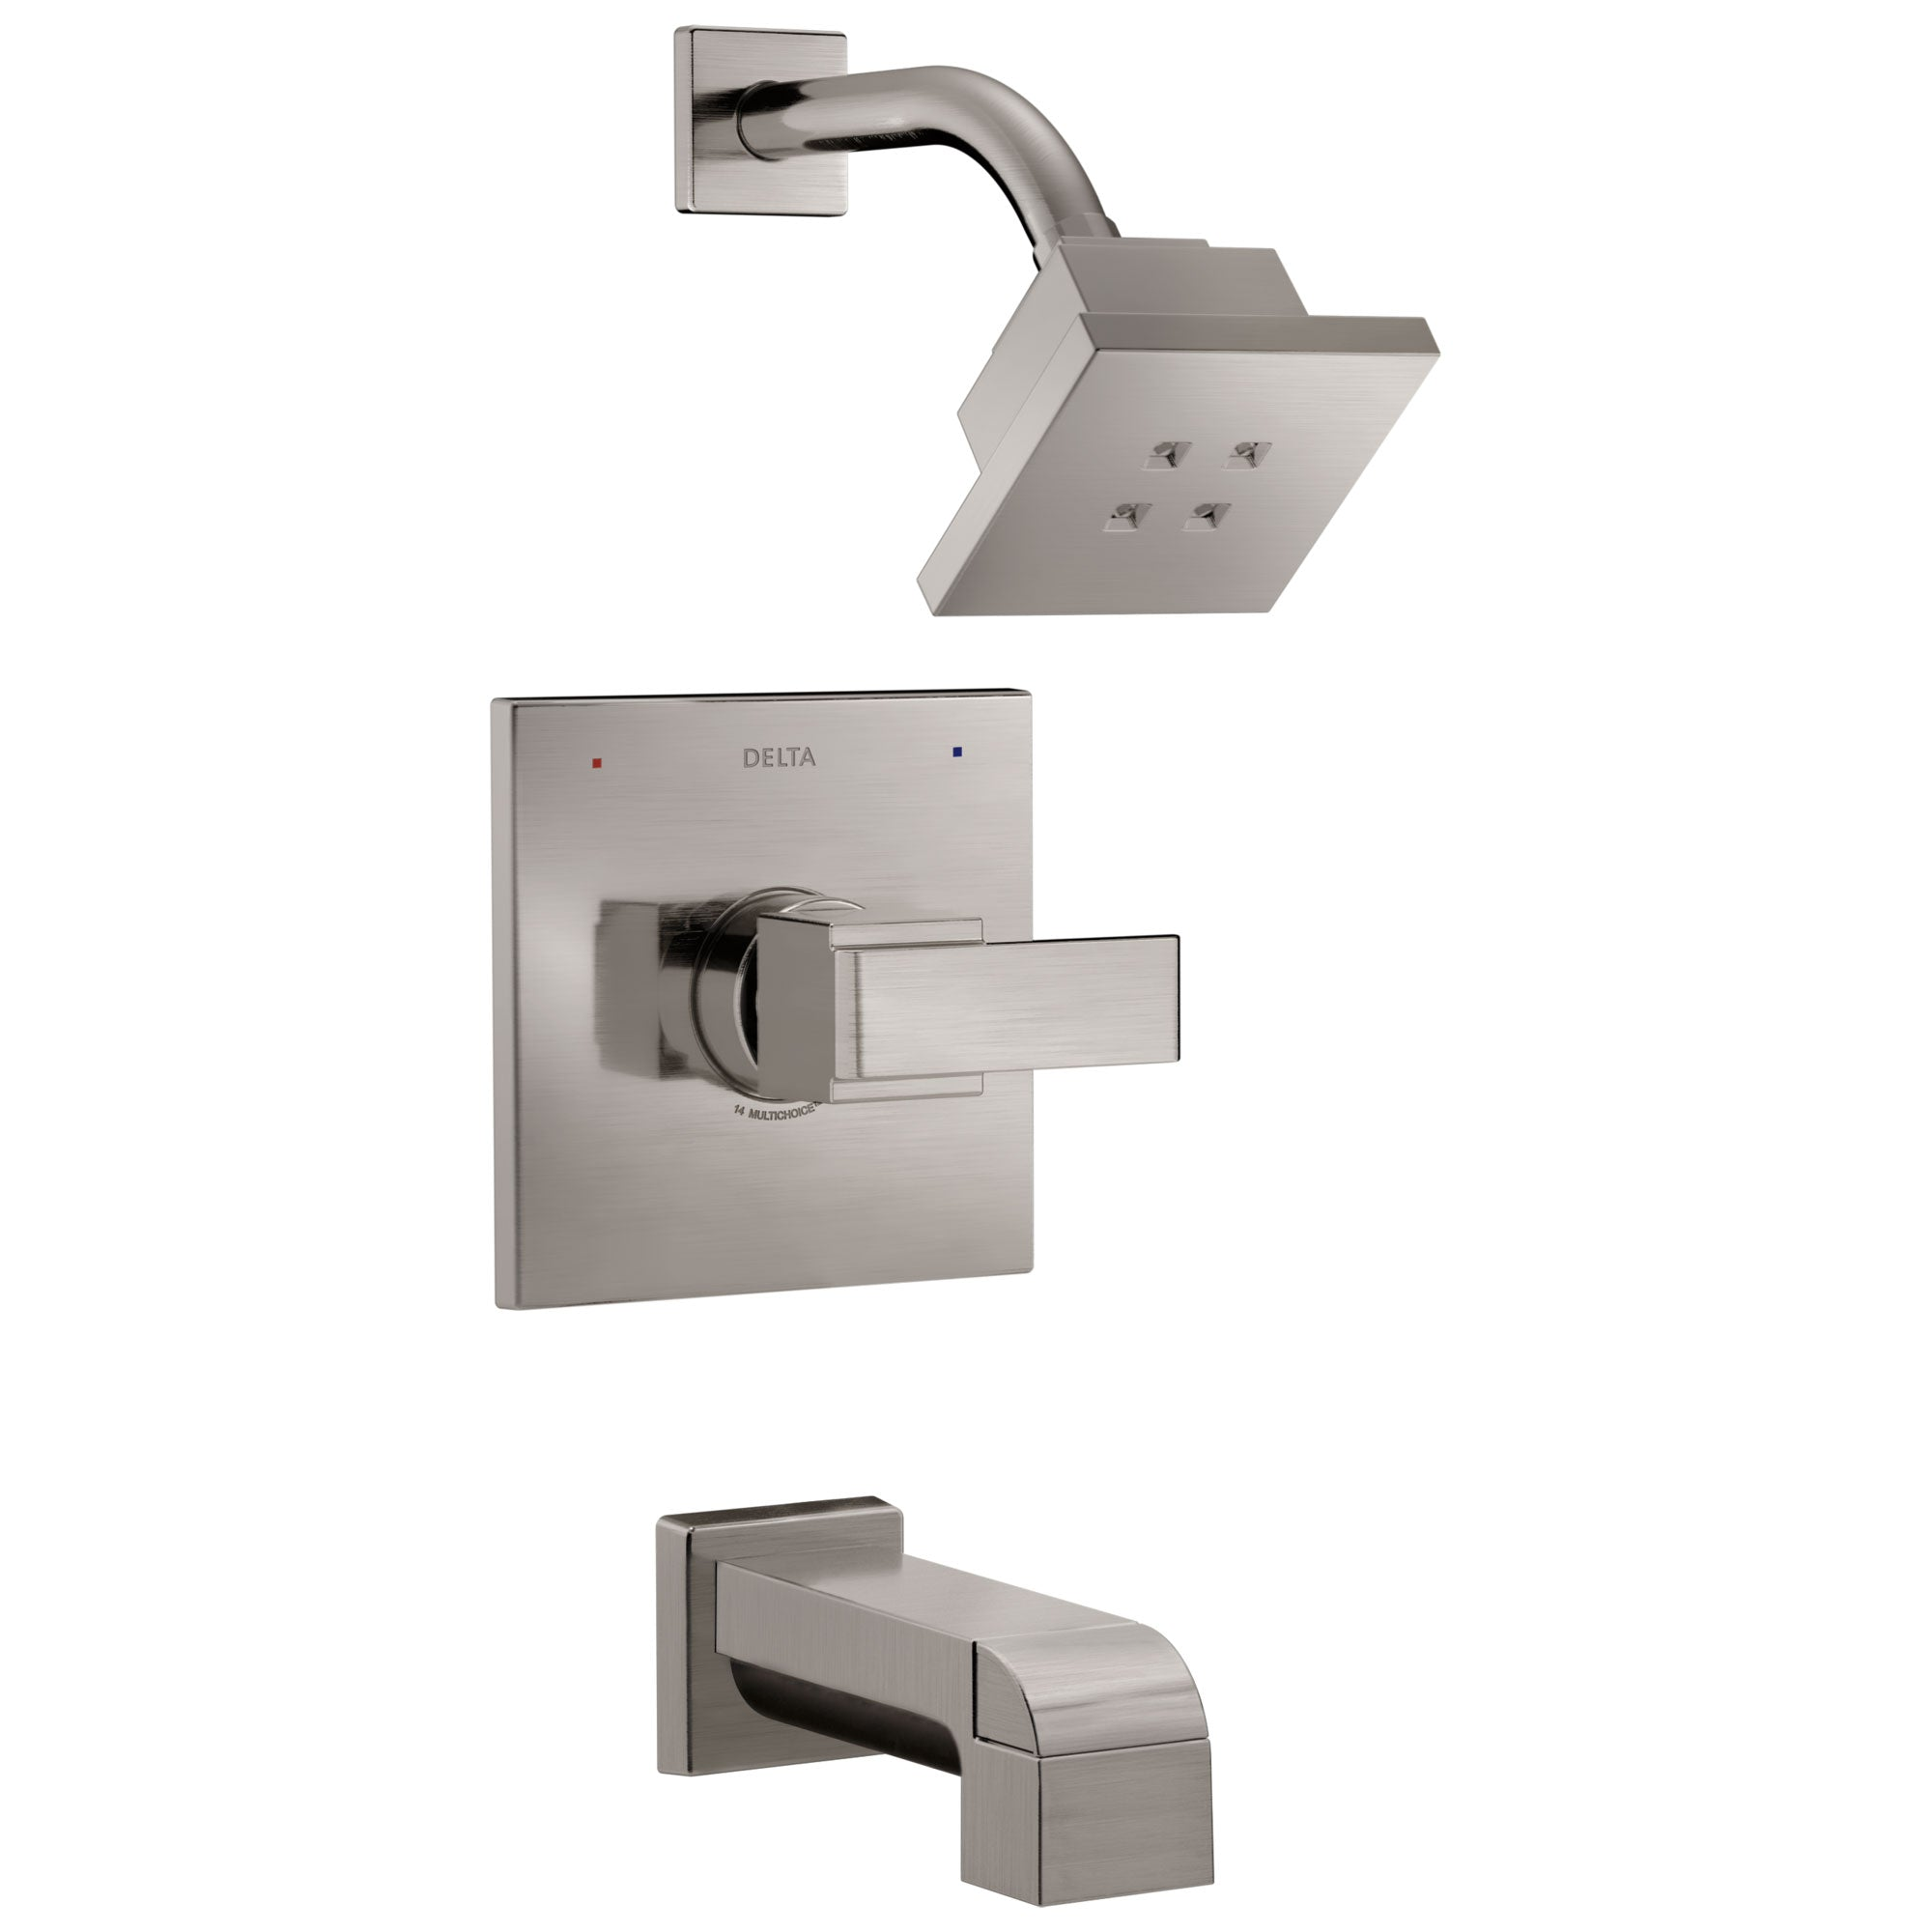 Delta Ara Collection Stainless Steel Finish Modern 1 Handle Monitor 14 Square Tub and Shower Faucet Combo Trim (Rough-in Valve Sold Separately) 732881